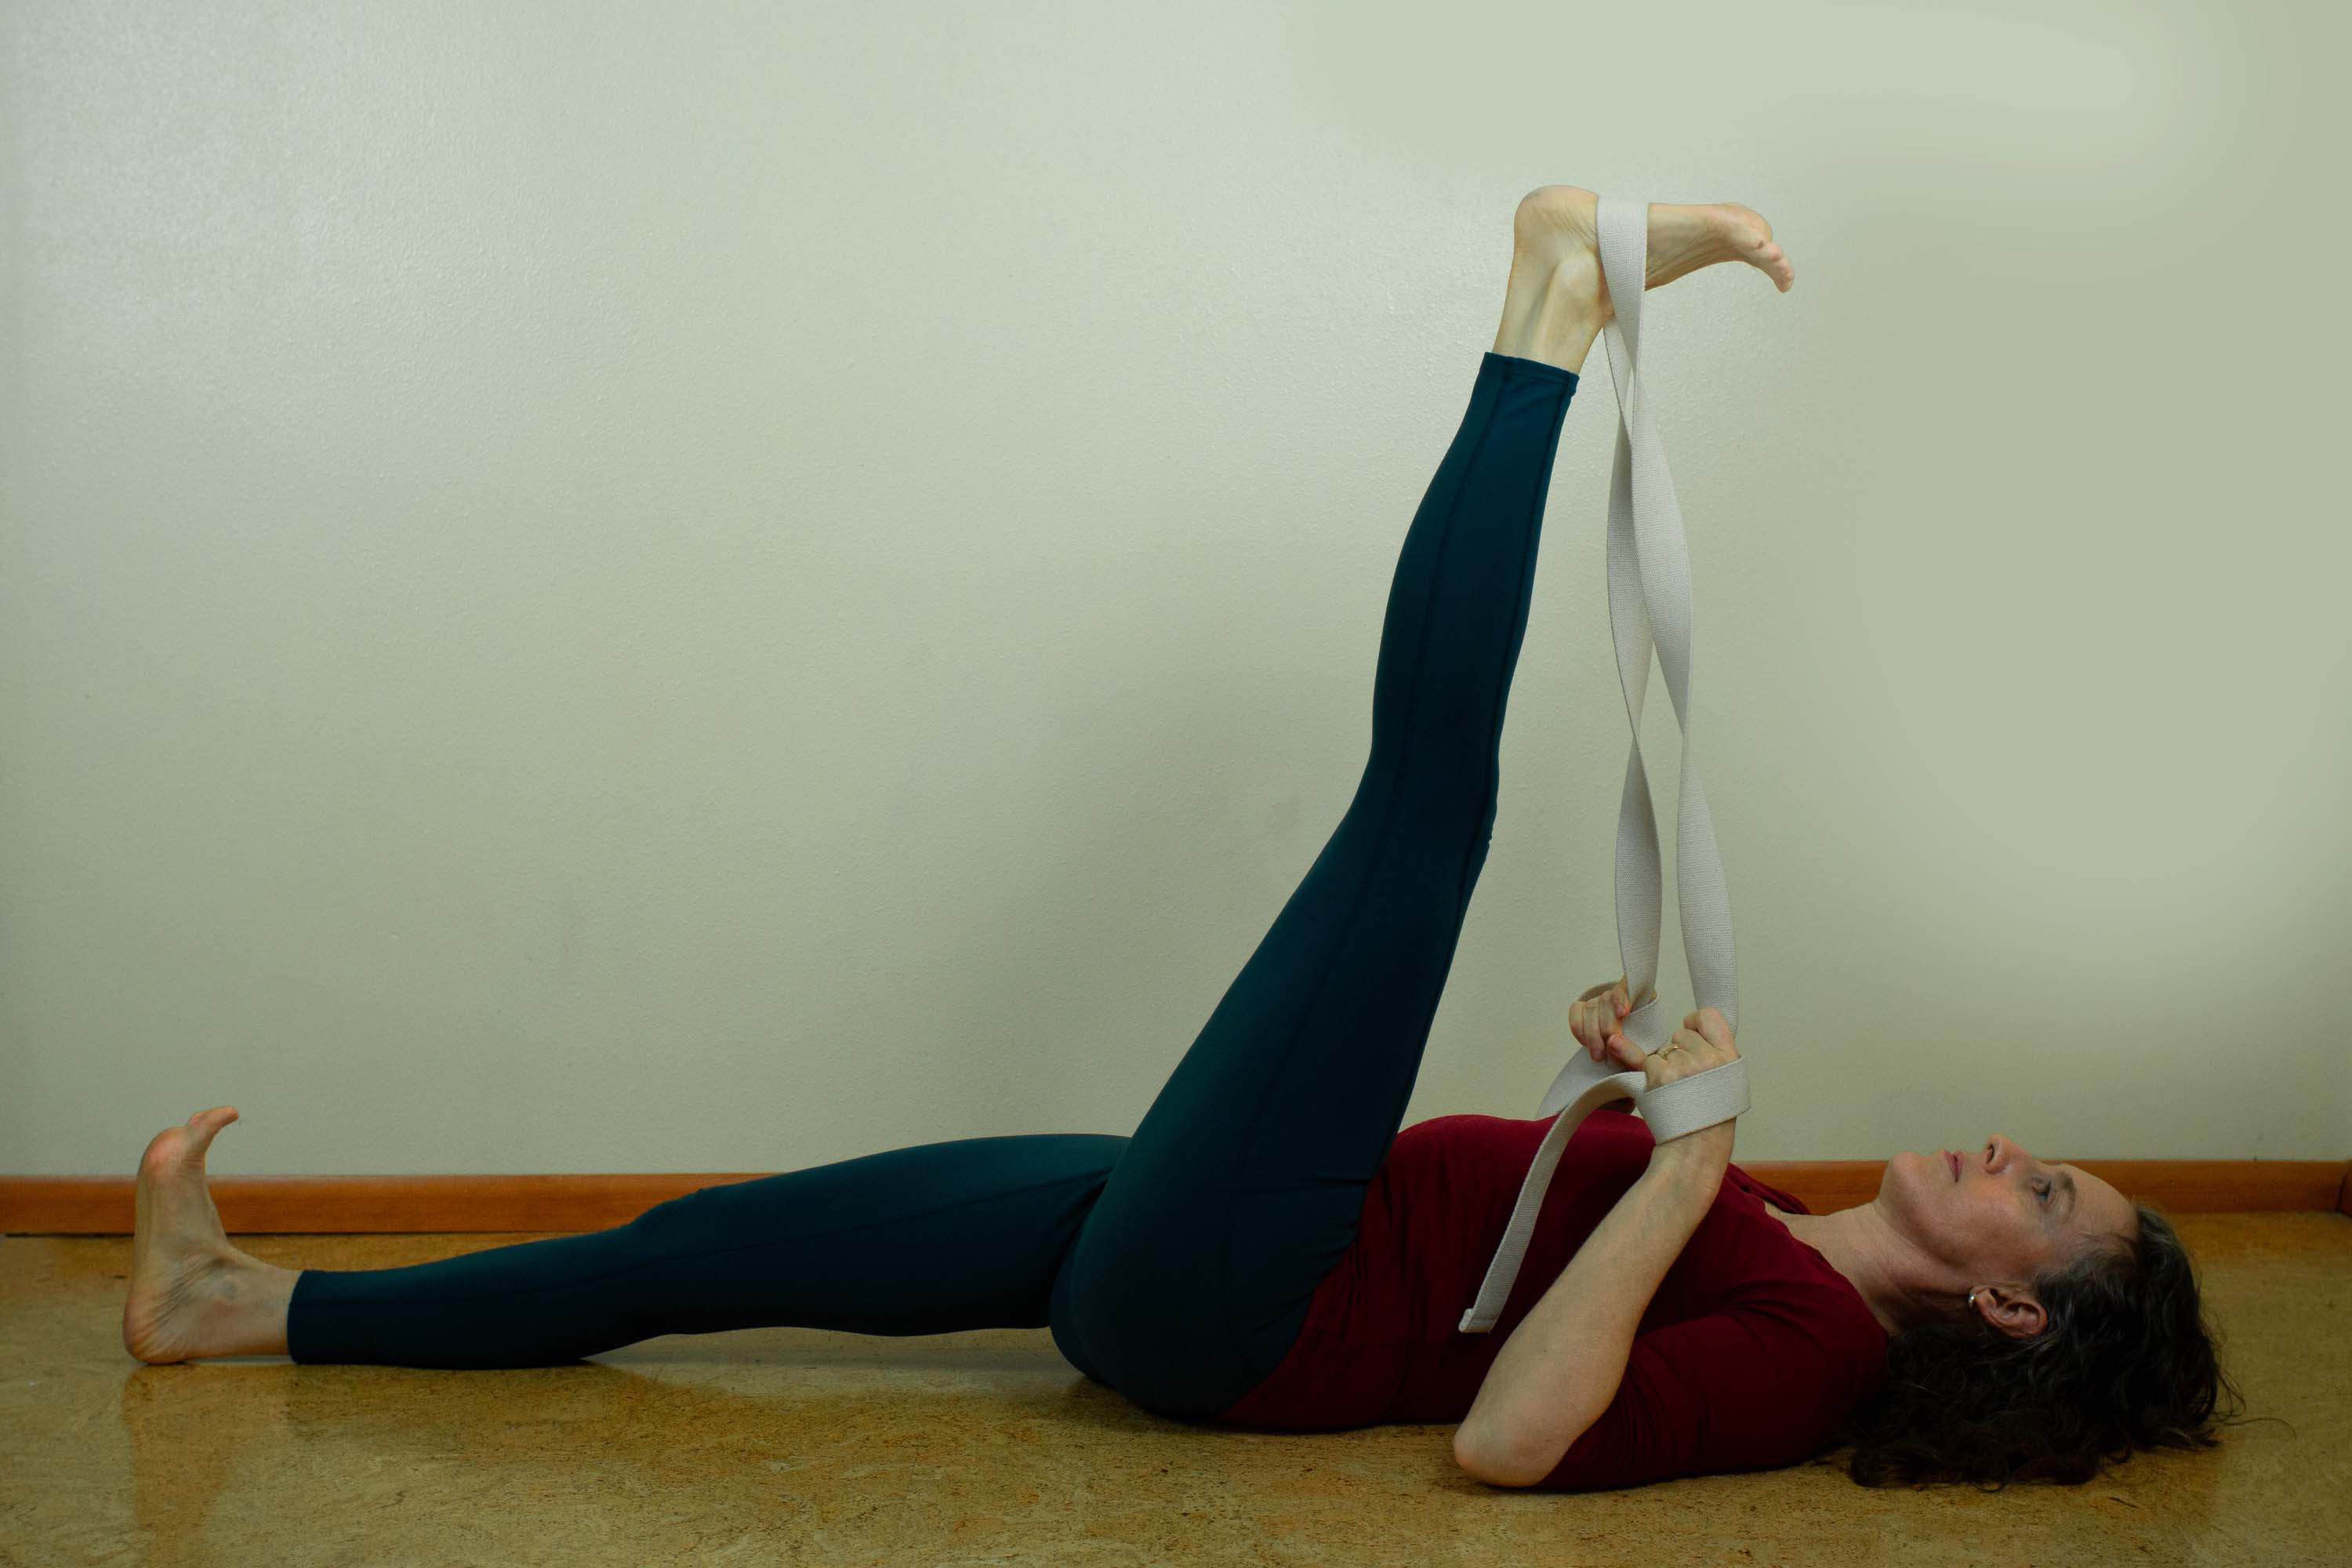 Annie Barrett doing a yoga pose lying on her back with her left leg held up in the air with the help of a exercise band.